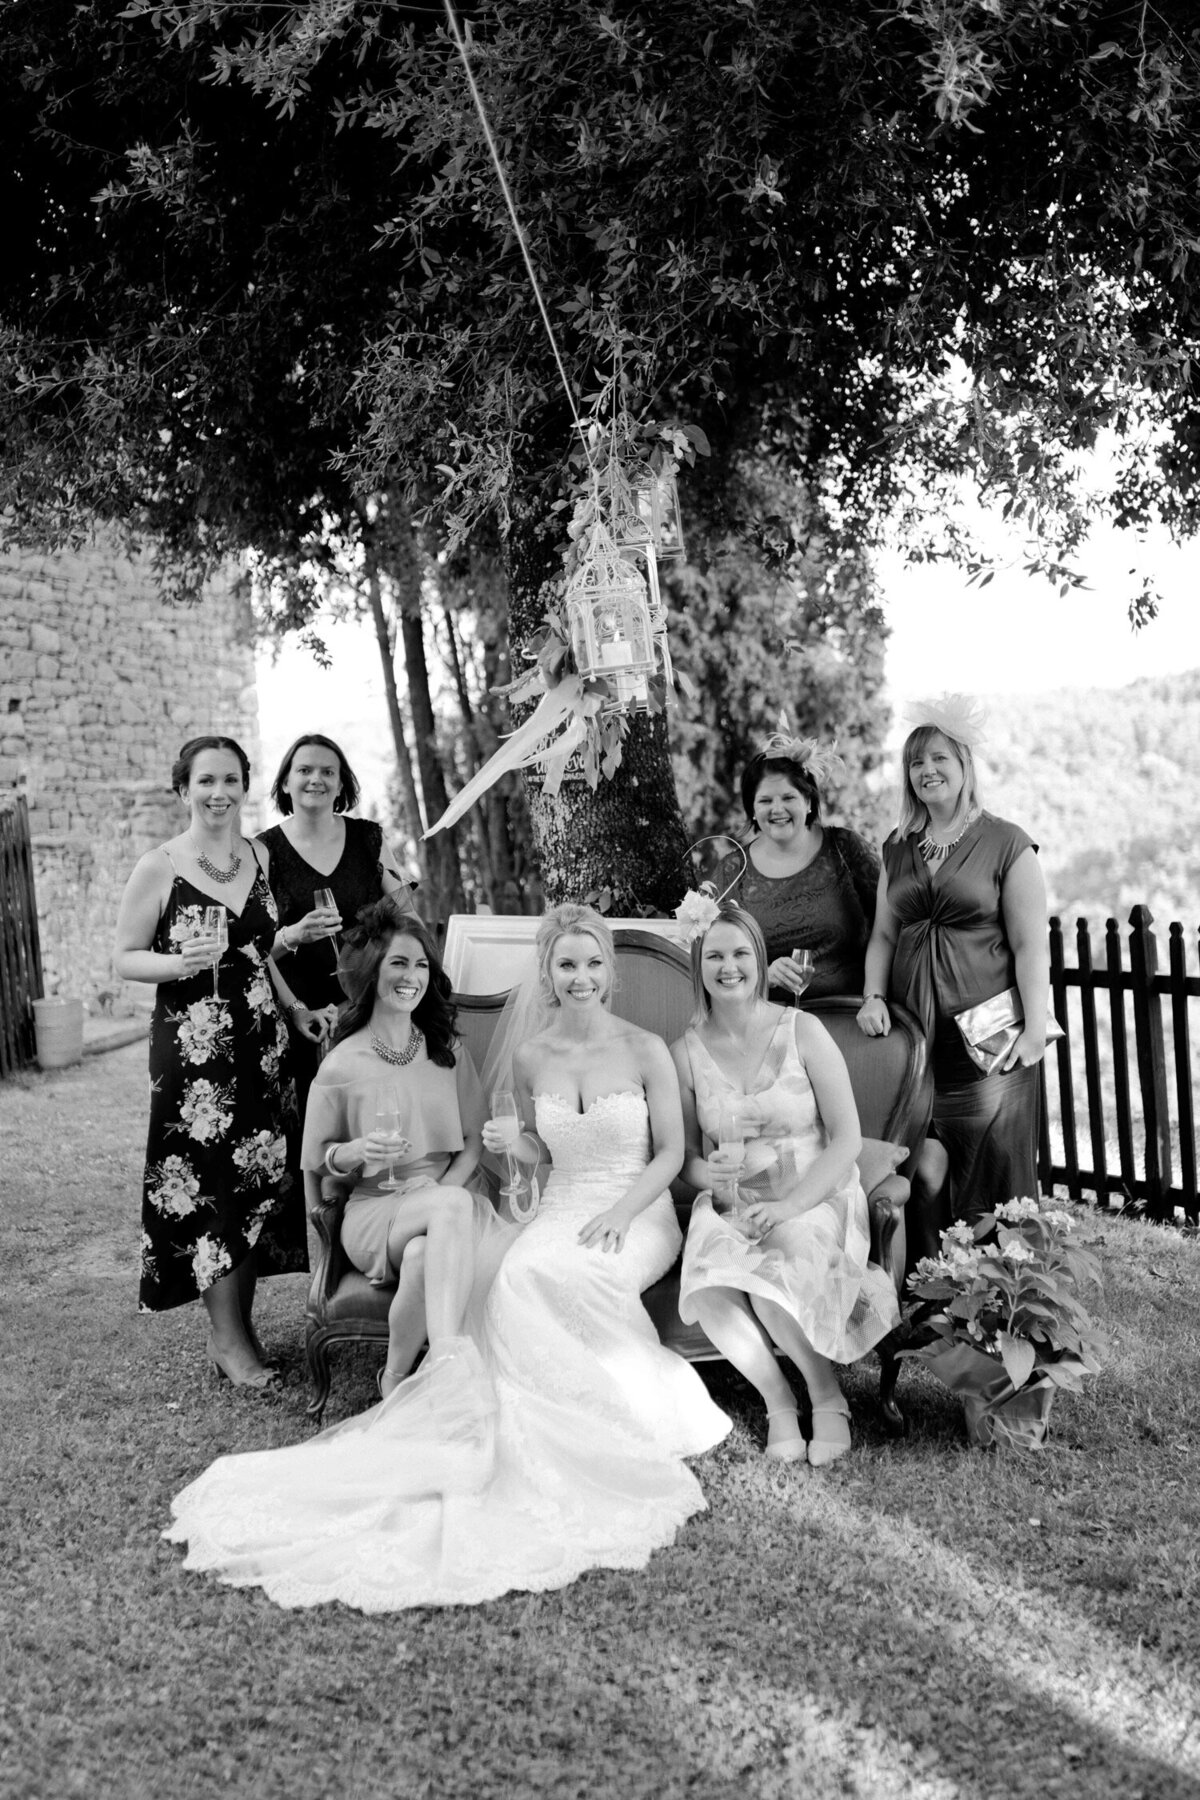 099_Tuscany_Luxury_Wedding_Photographer (109 von 215)_So thankful to be a luxury destination wedding photographer in Tuscany! Claire and James invited their beloved family & friends from London to their luxury wedding in Tuscany.